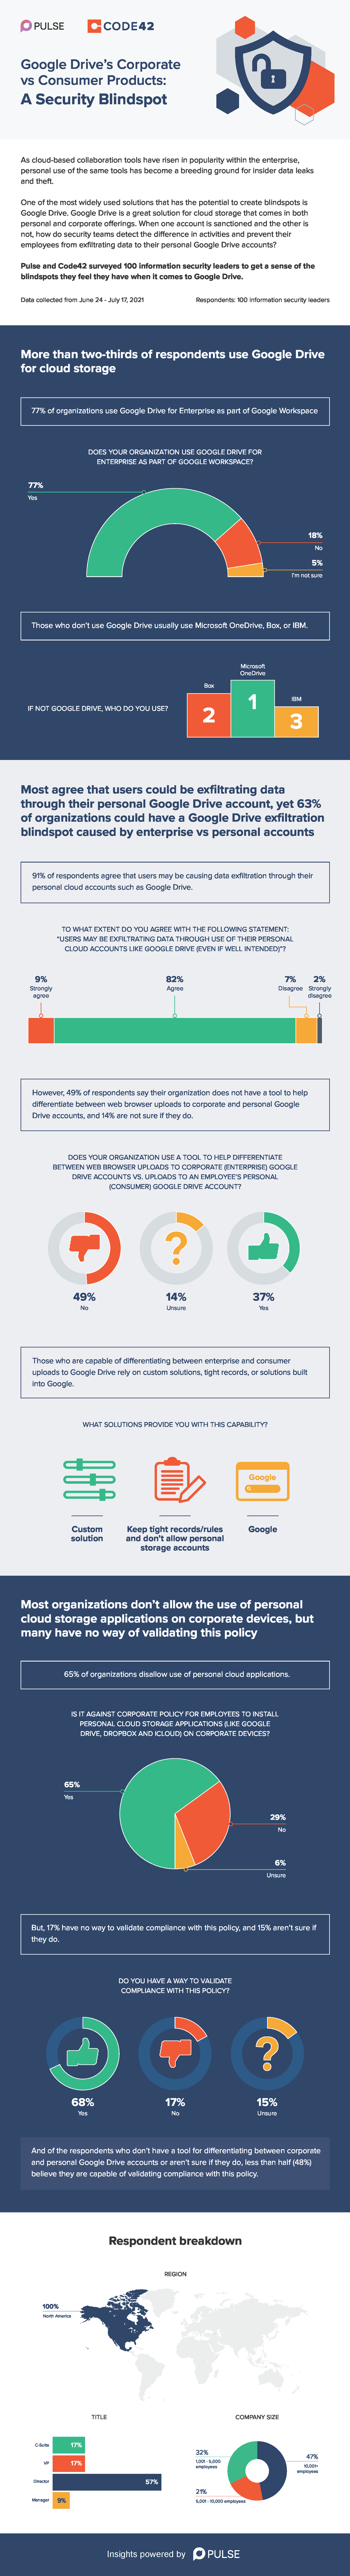 An infographic displaying the survey results from security professionals regarding how Google Drive's corporate products can be a security blindspot for their team.